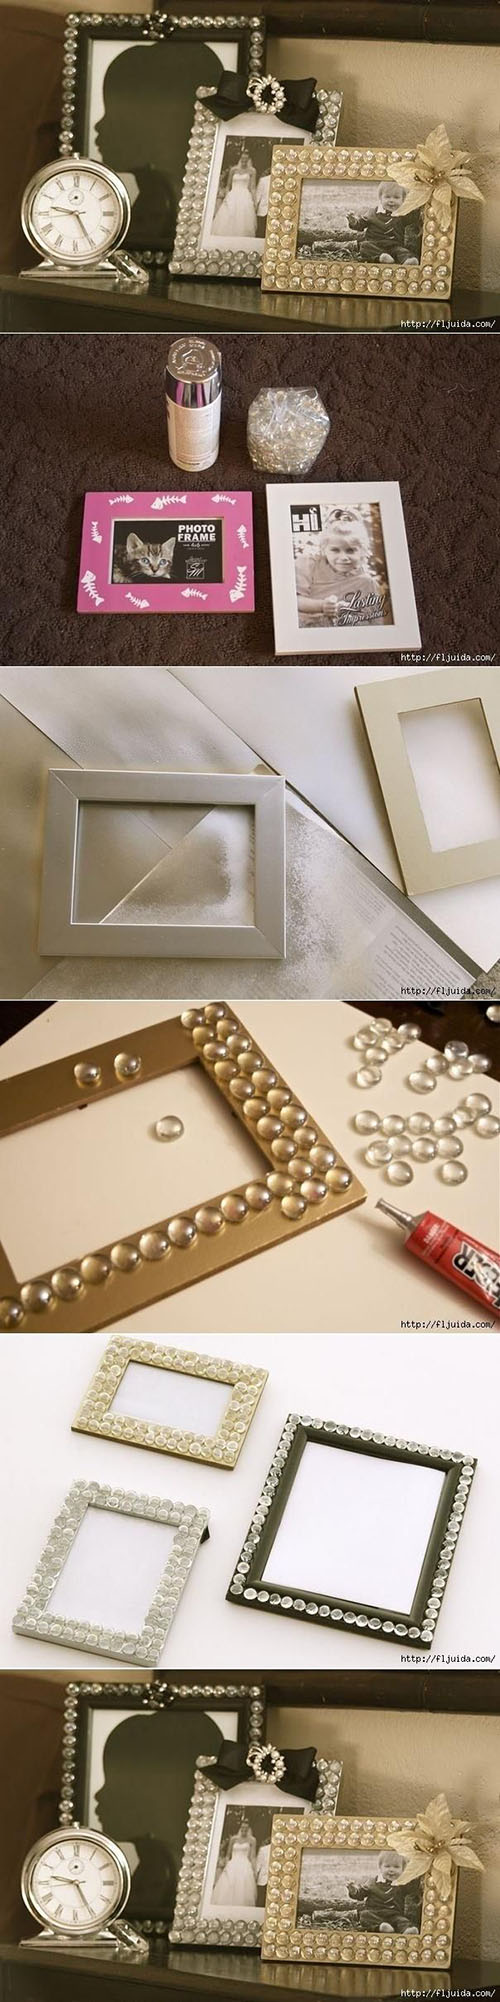 5  DIY Glamorous Picture Frameaccebce